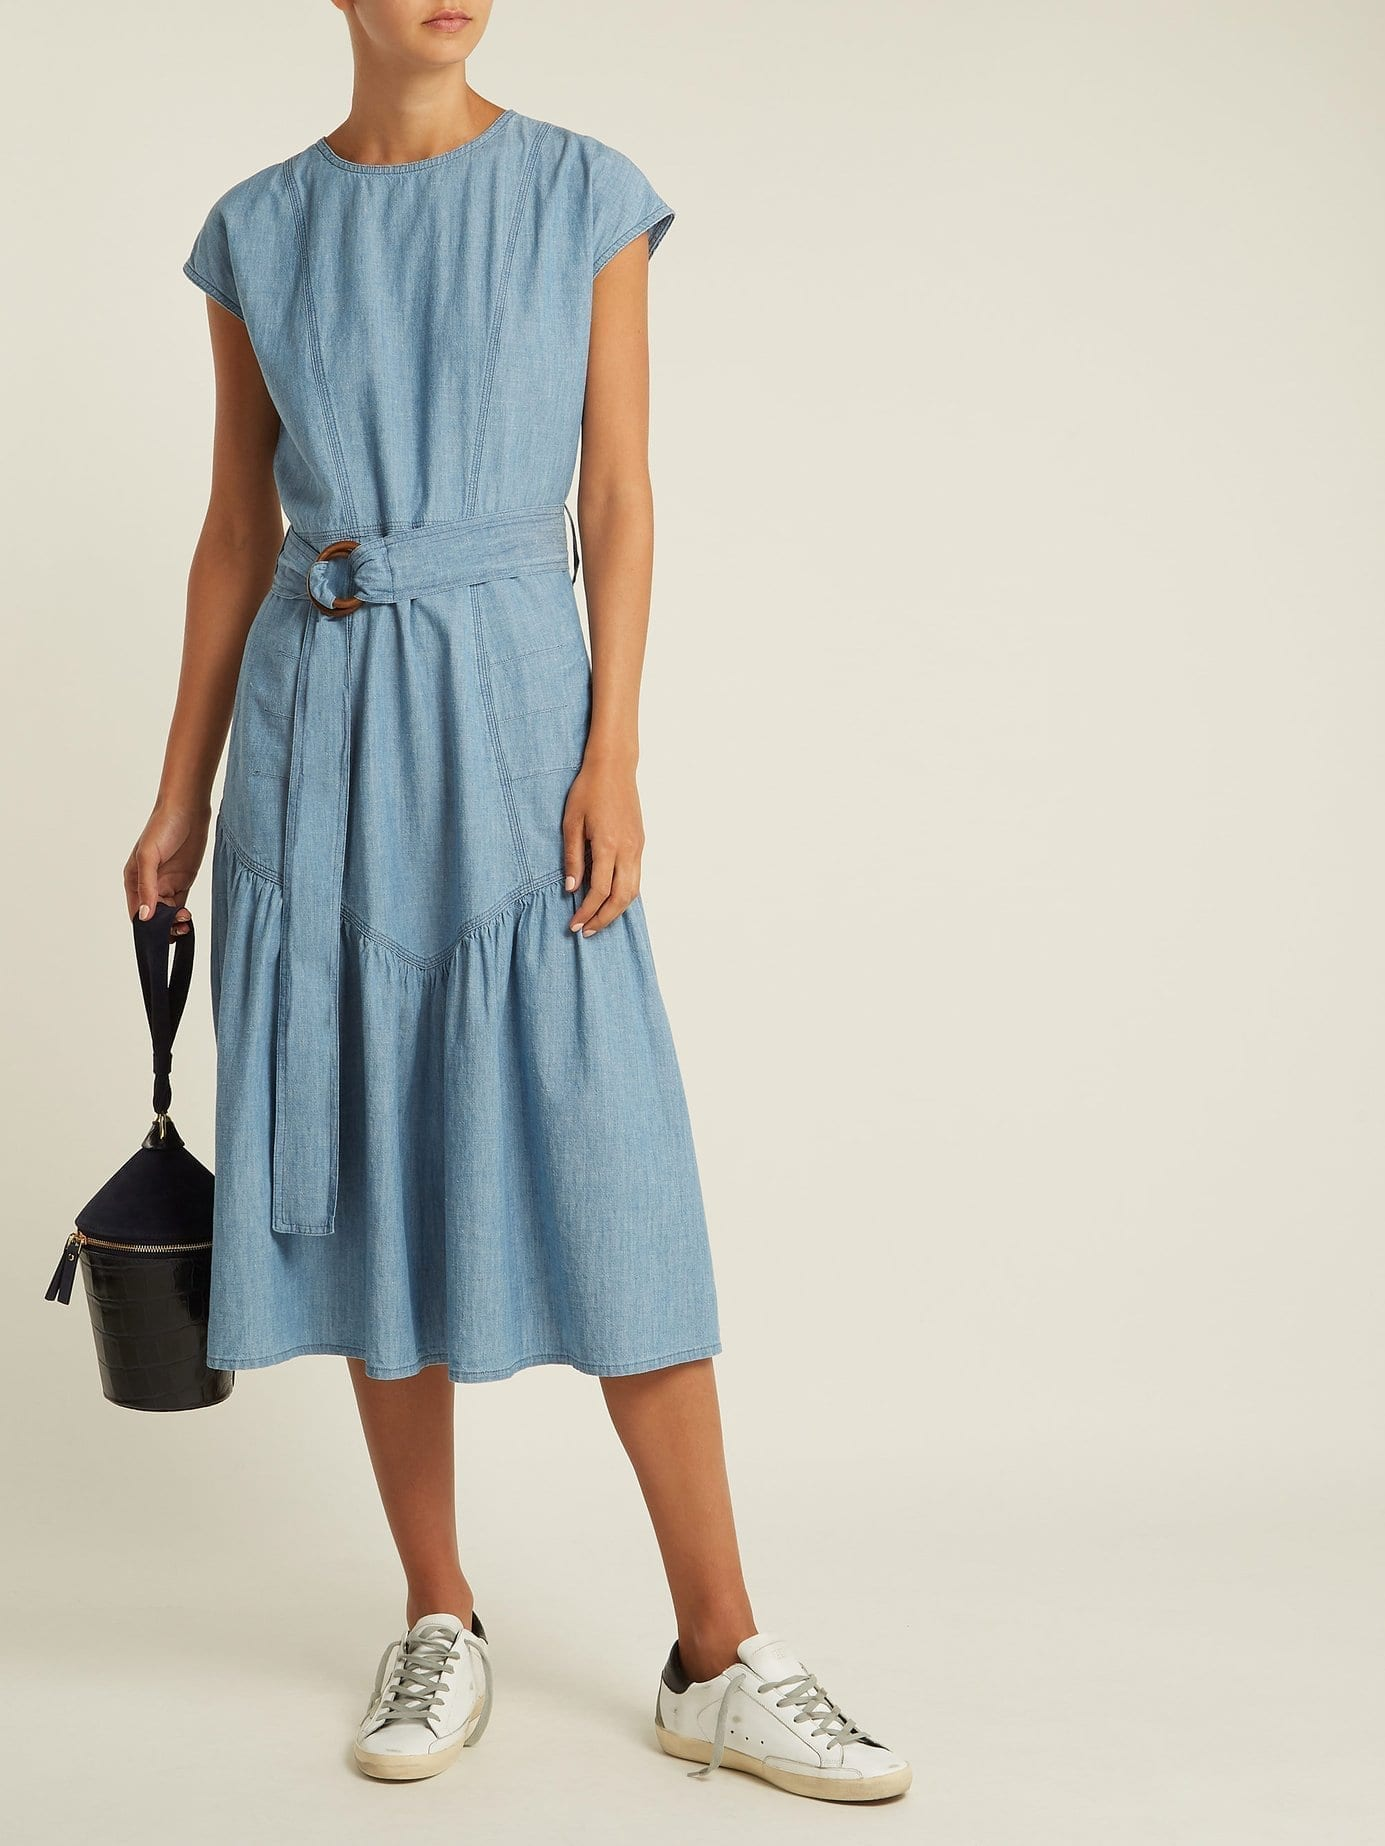 M I H Jeans Aubrey Chambray Midi Light Blue Dress